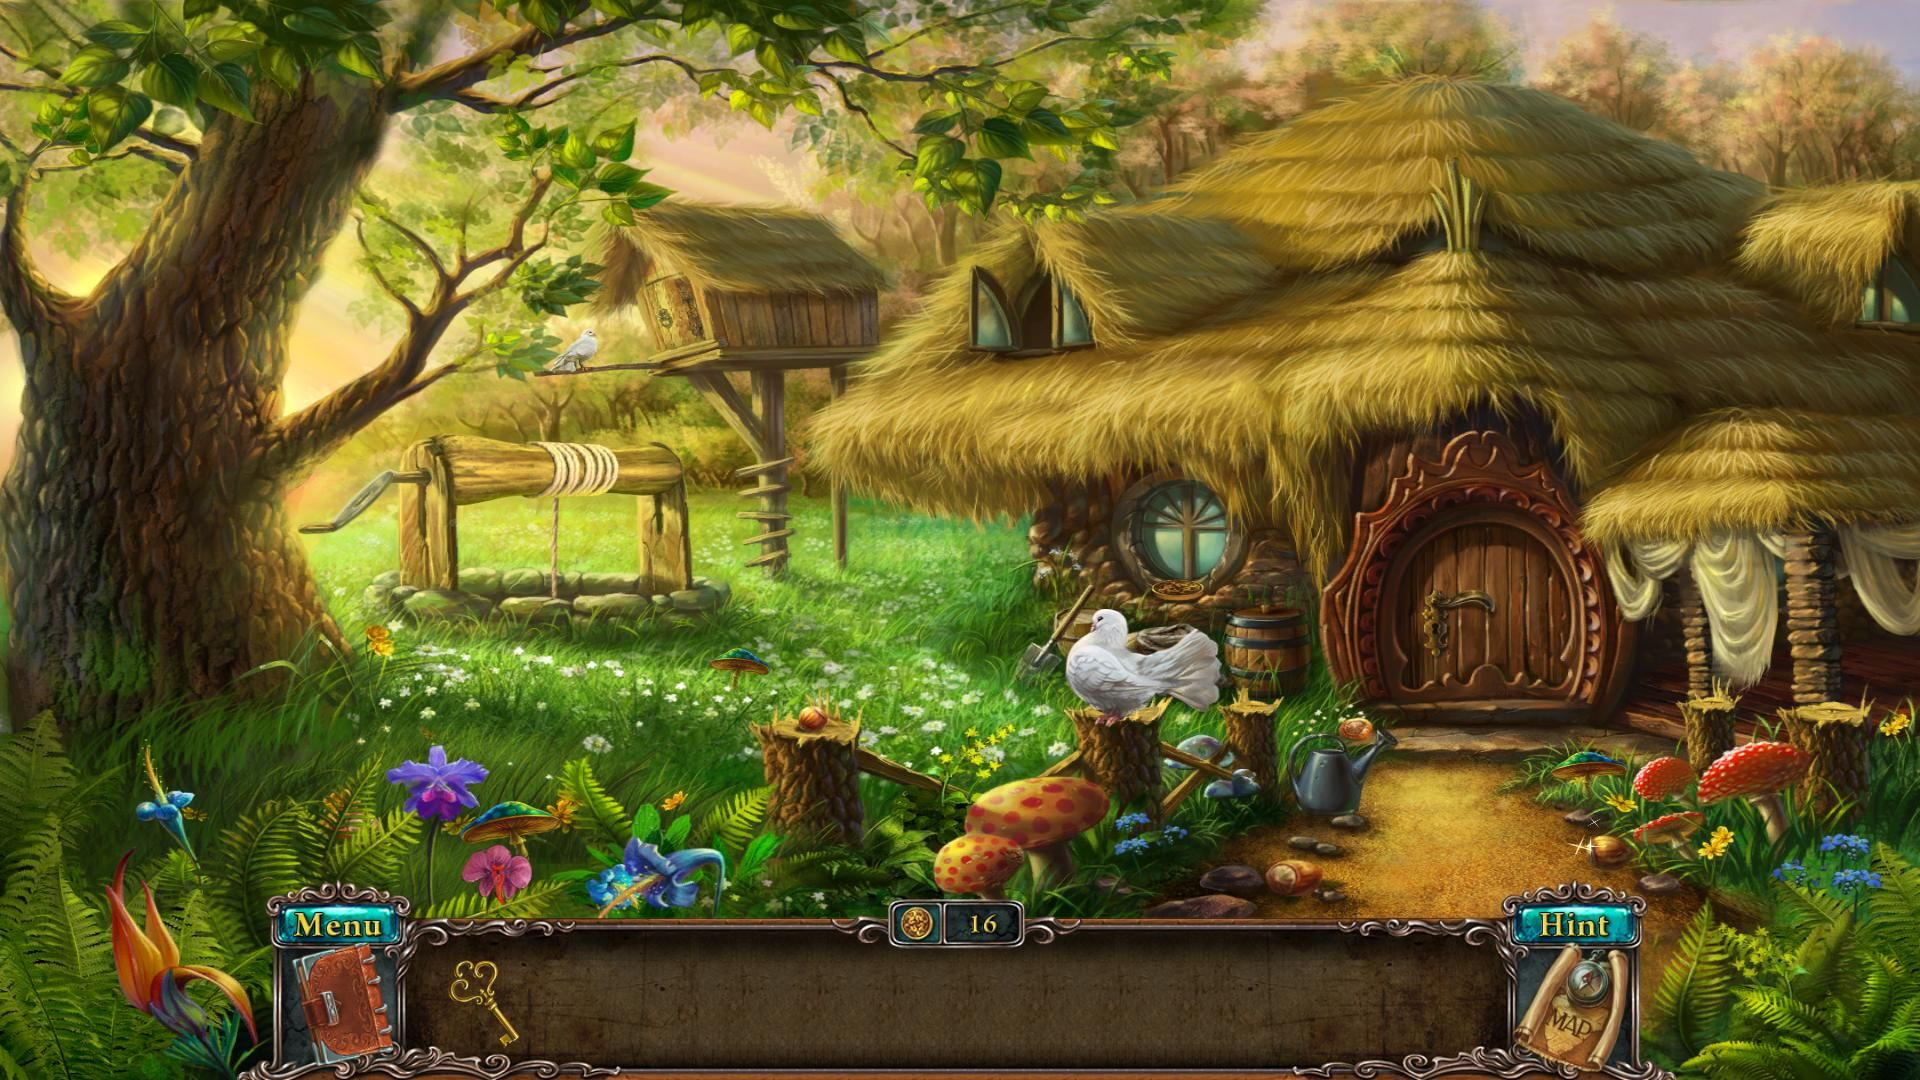 Lost Souls Enchanted Paintings Screenshots For Windows